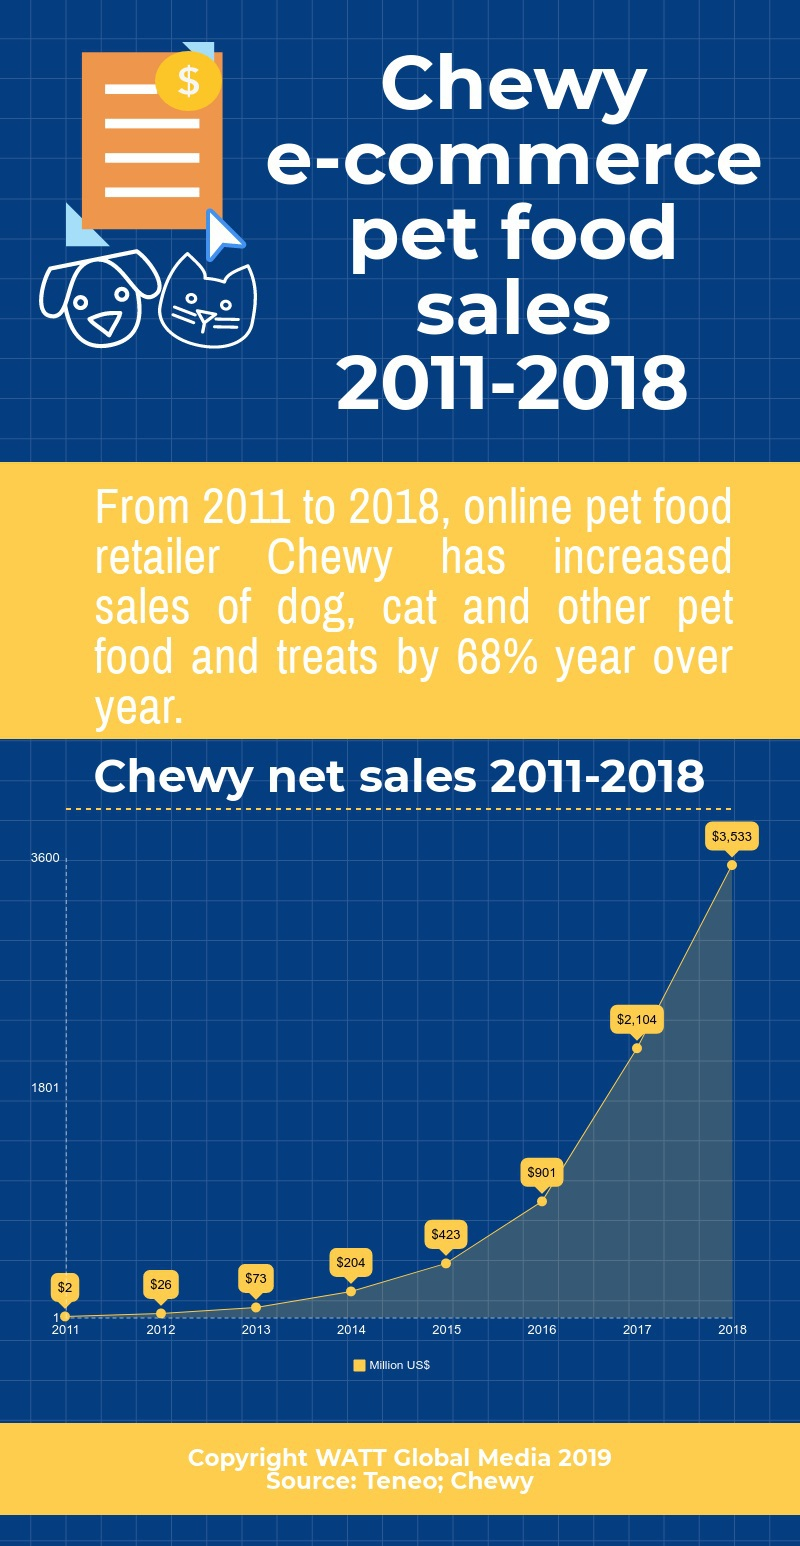 INFOGRAPHIC Chewy e-commerce pet food sales 2011-2018.jpg